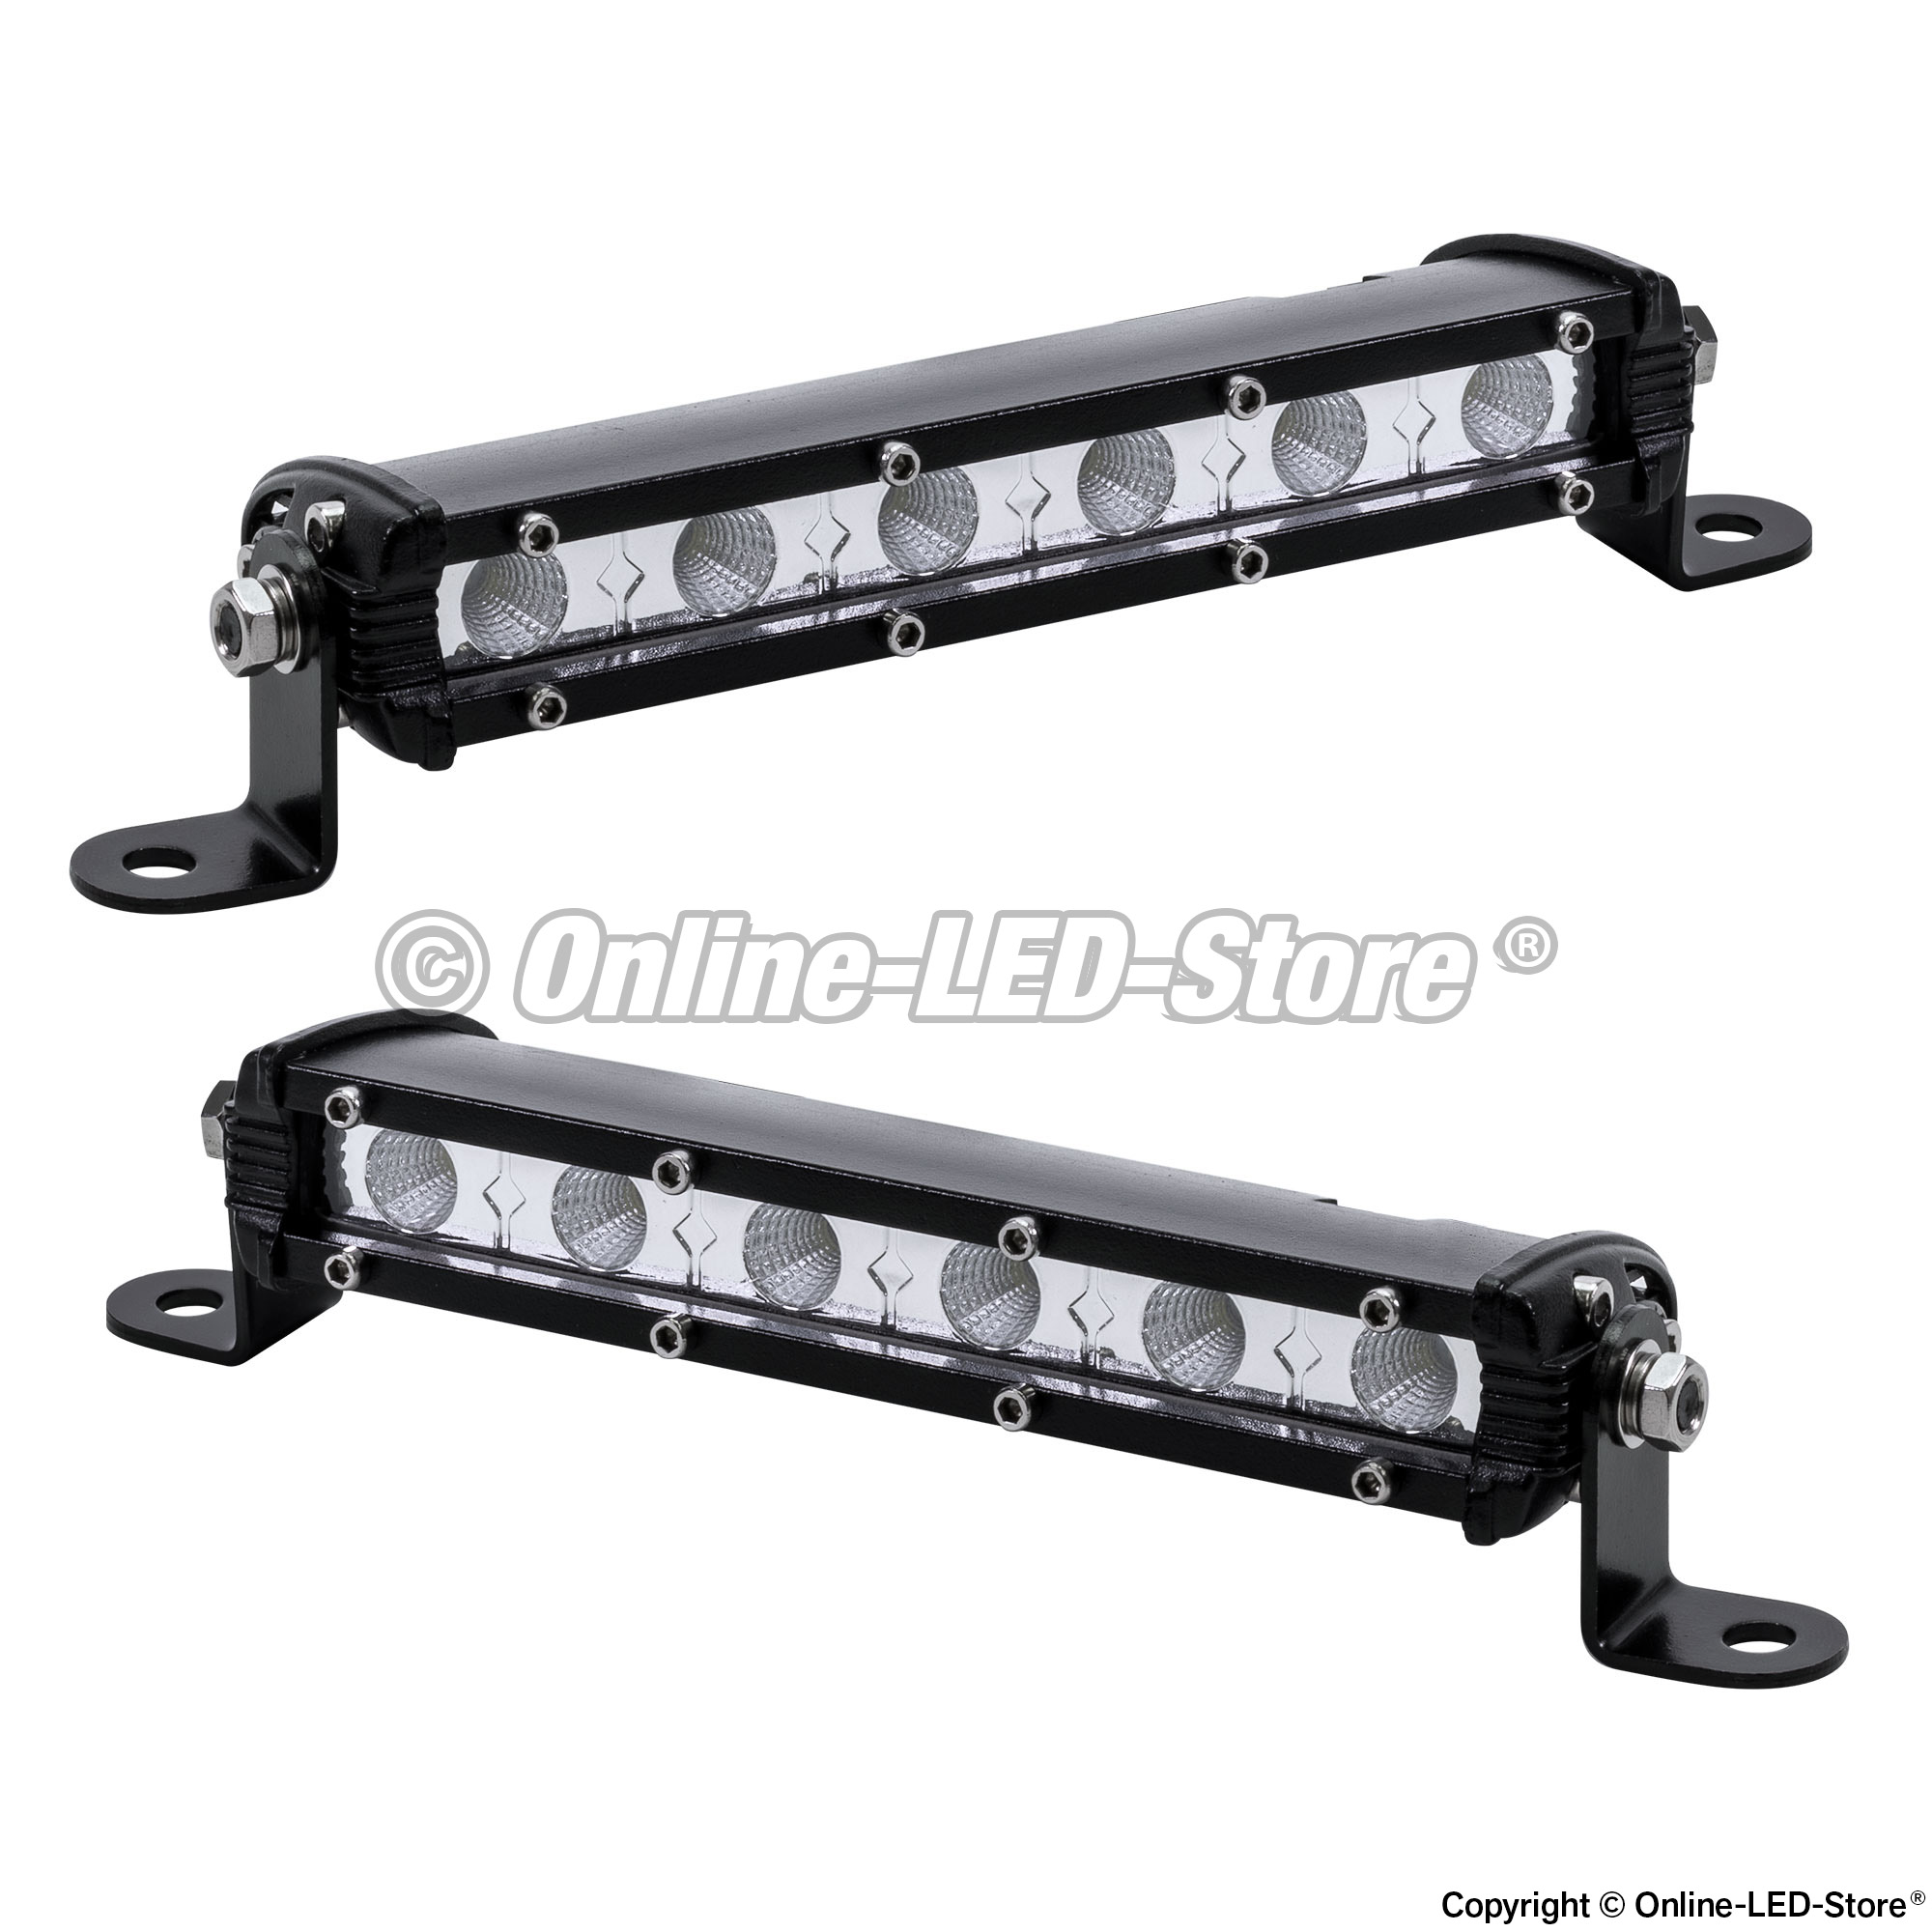 Ultra Thin LED Light Bar | Ultra Slim LED Light Bar